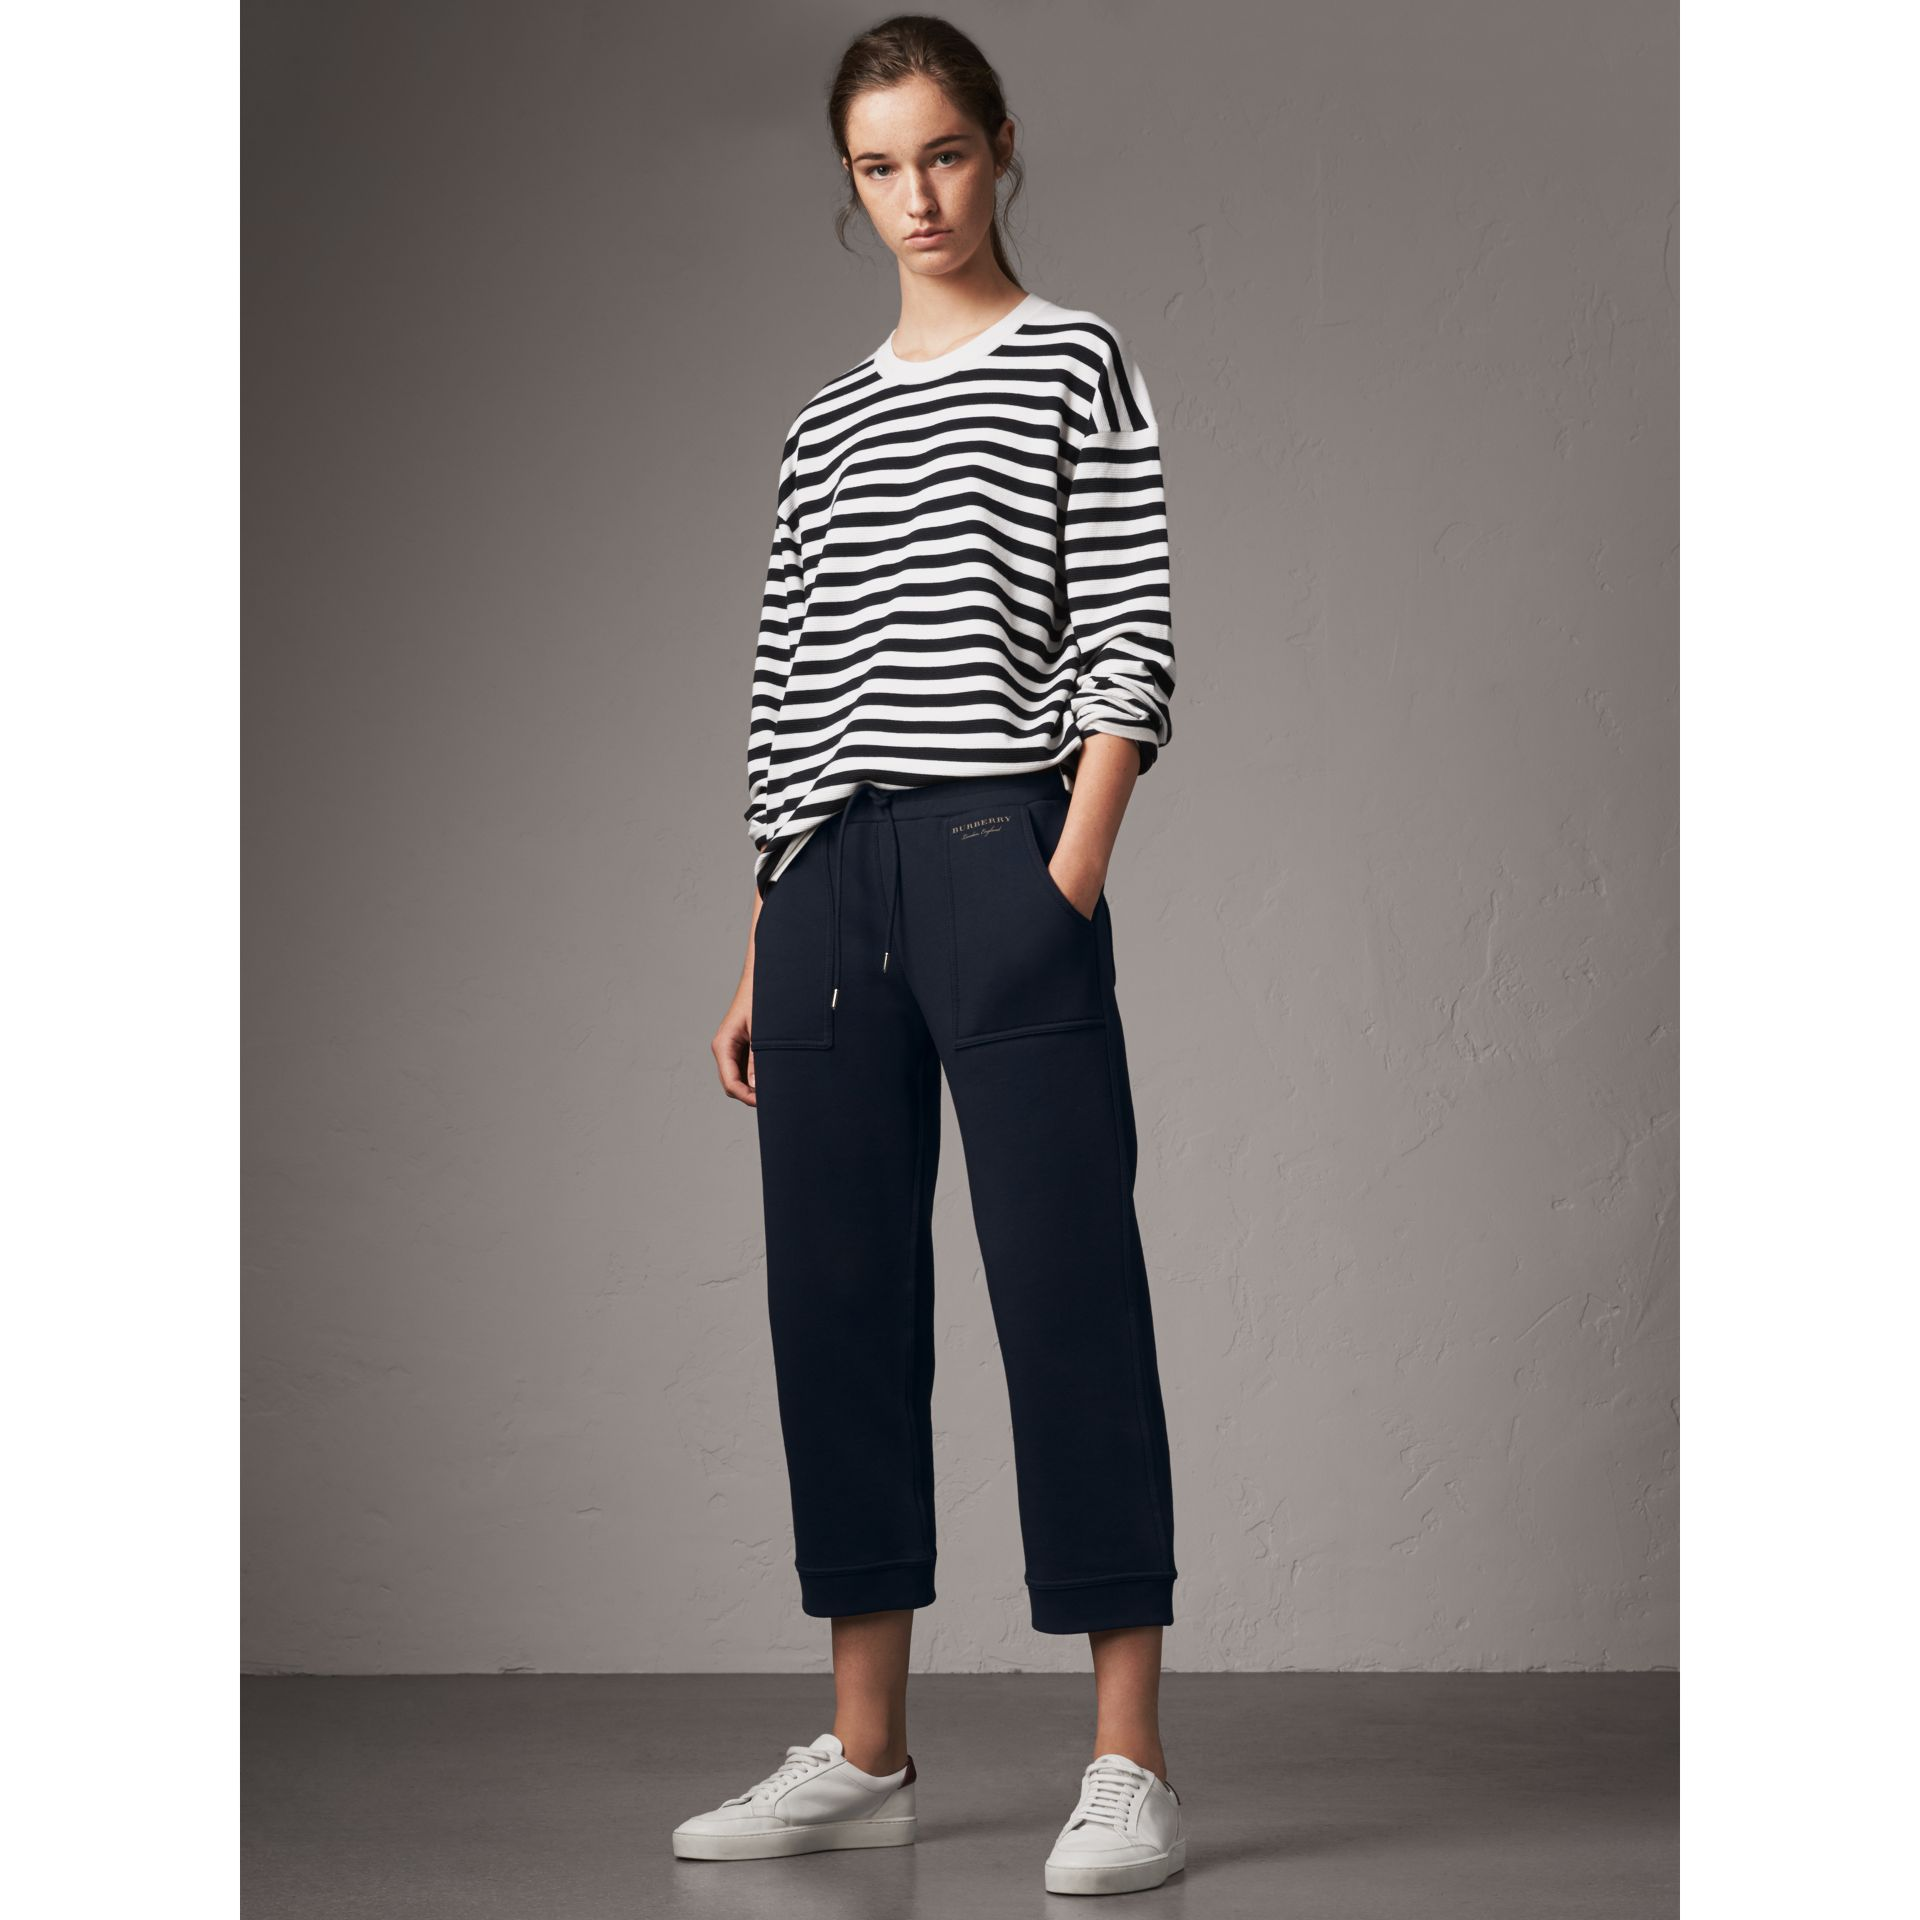 Pantalon de survêtement 7/8 en jersey (Marine) - Femme | Burberry - photo de la galerie 1